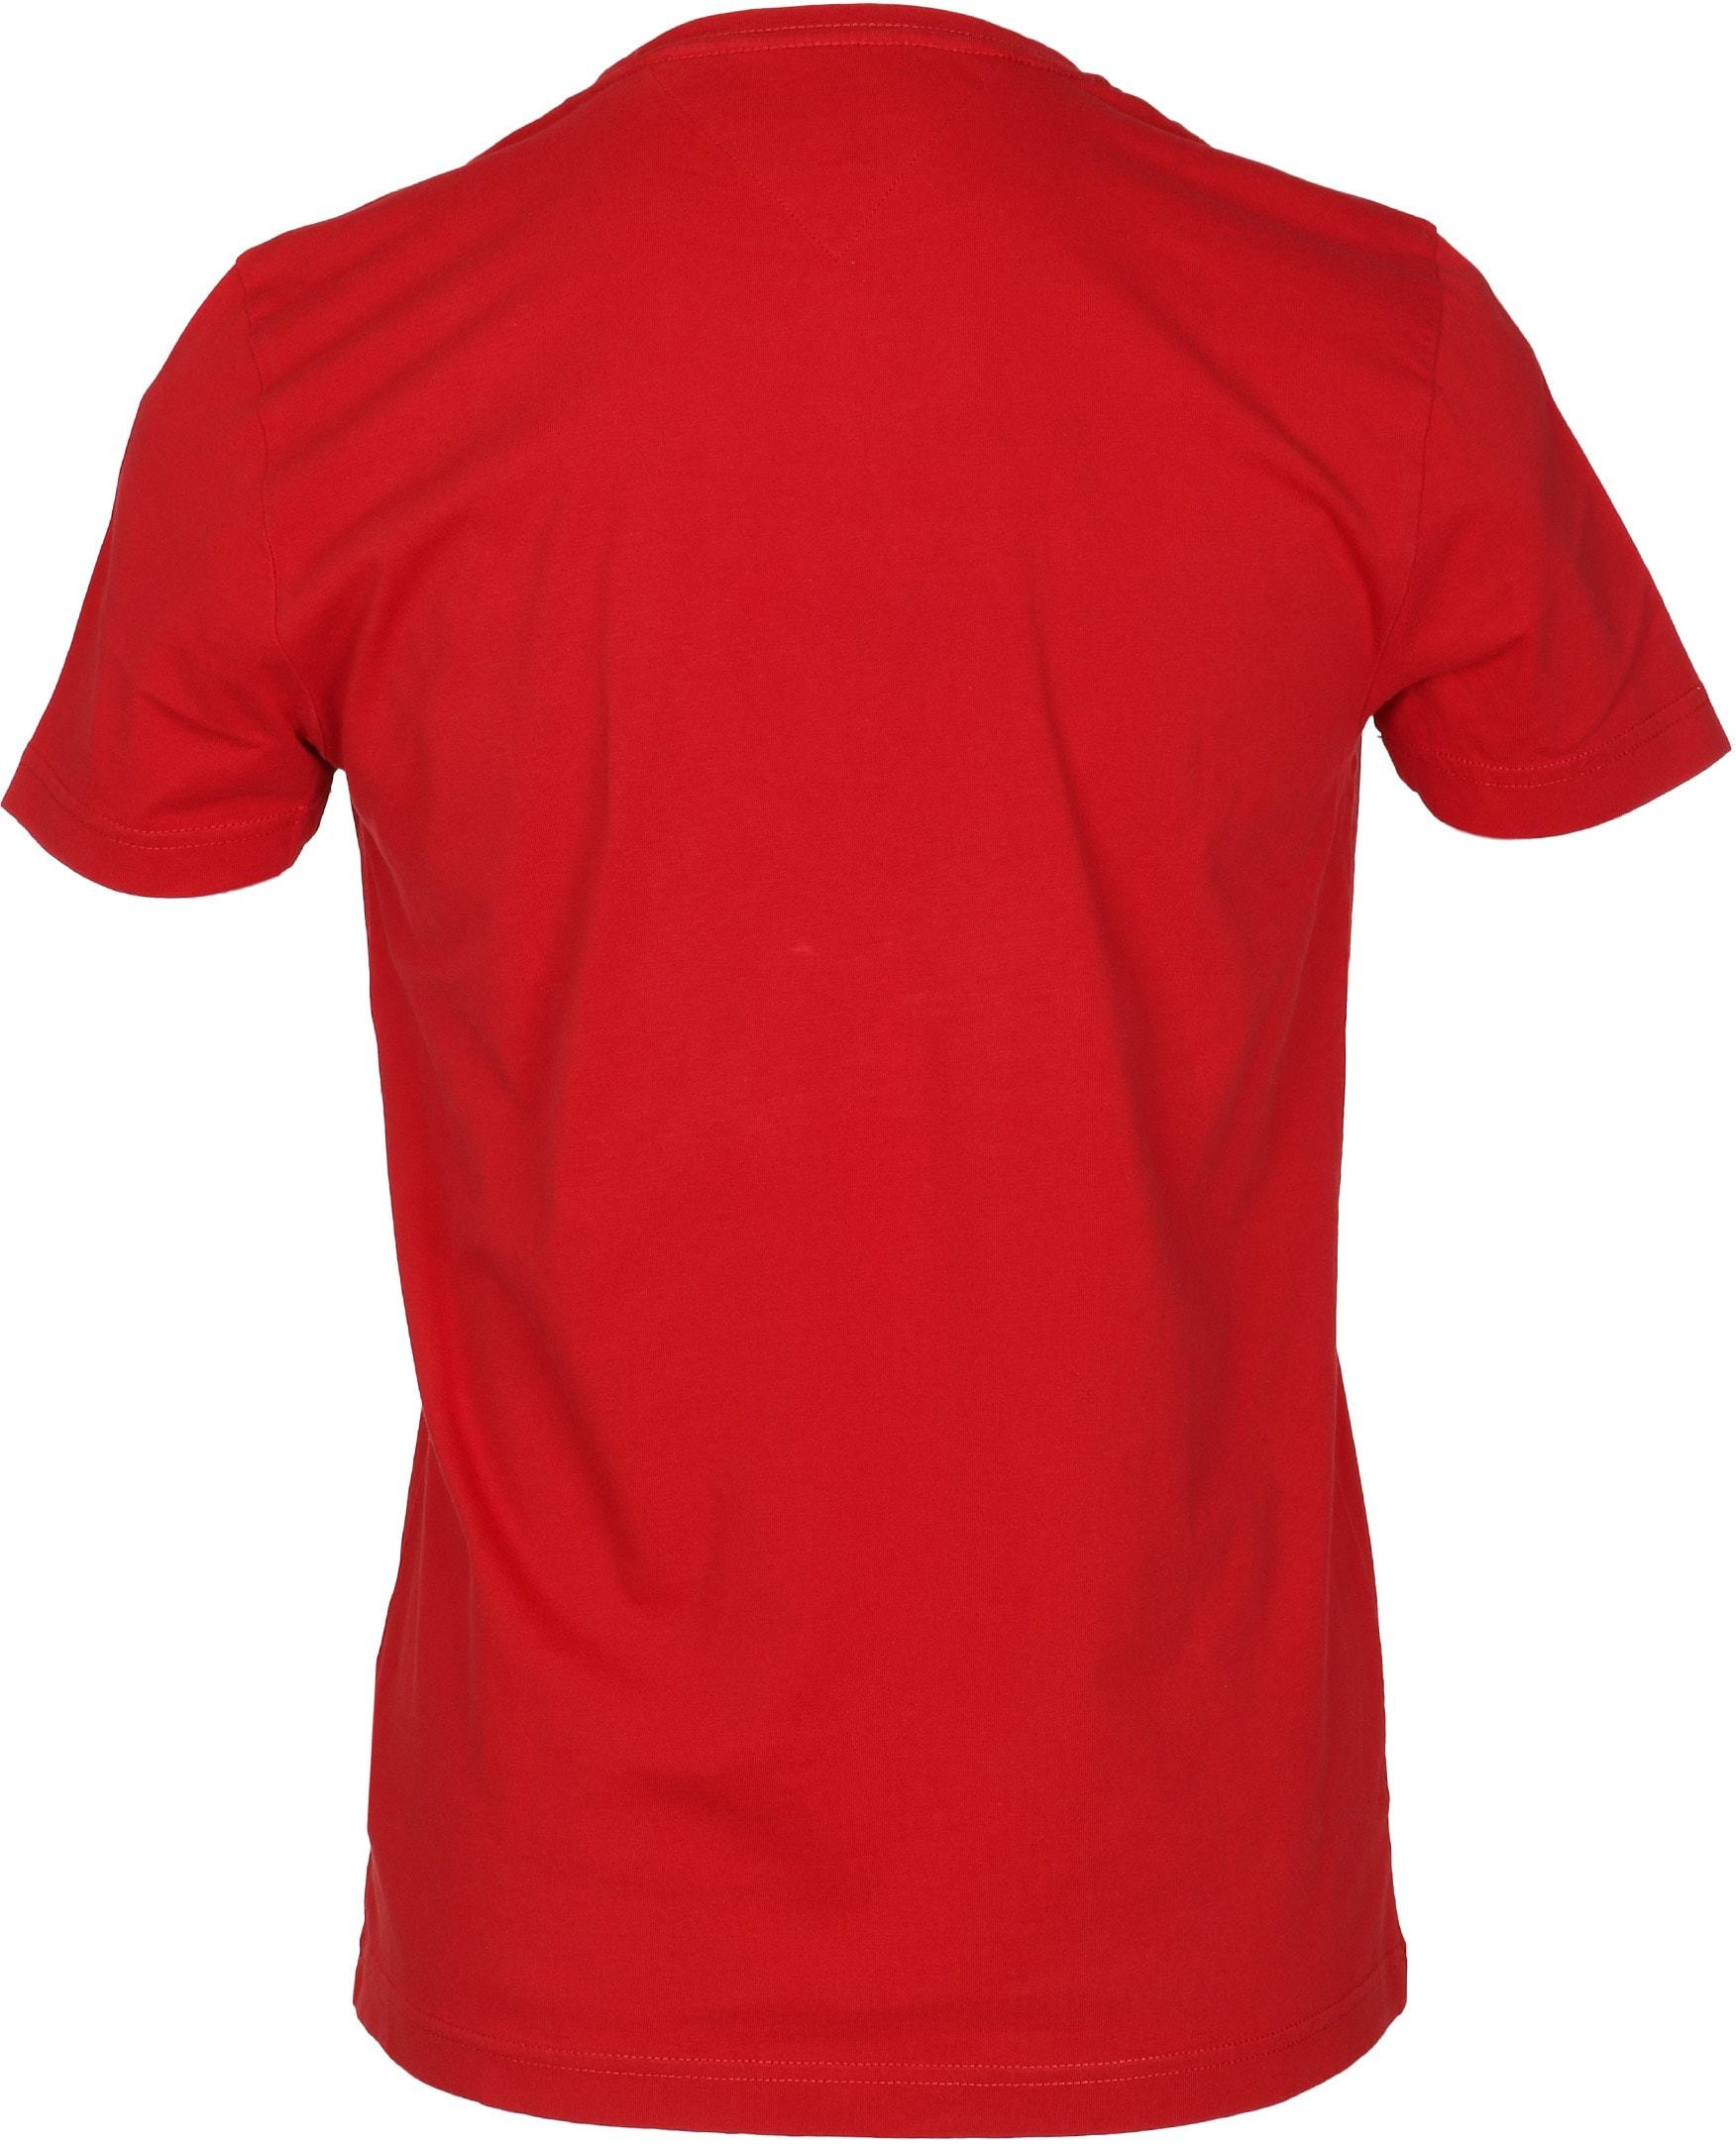 Tommy Hilfiger T-shirt TH Rood foto 3